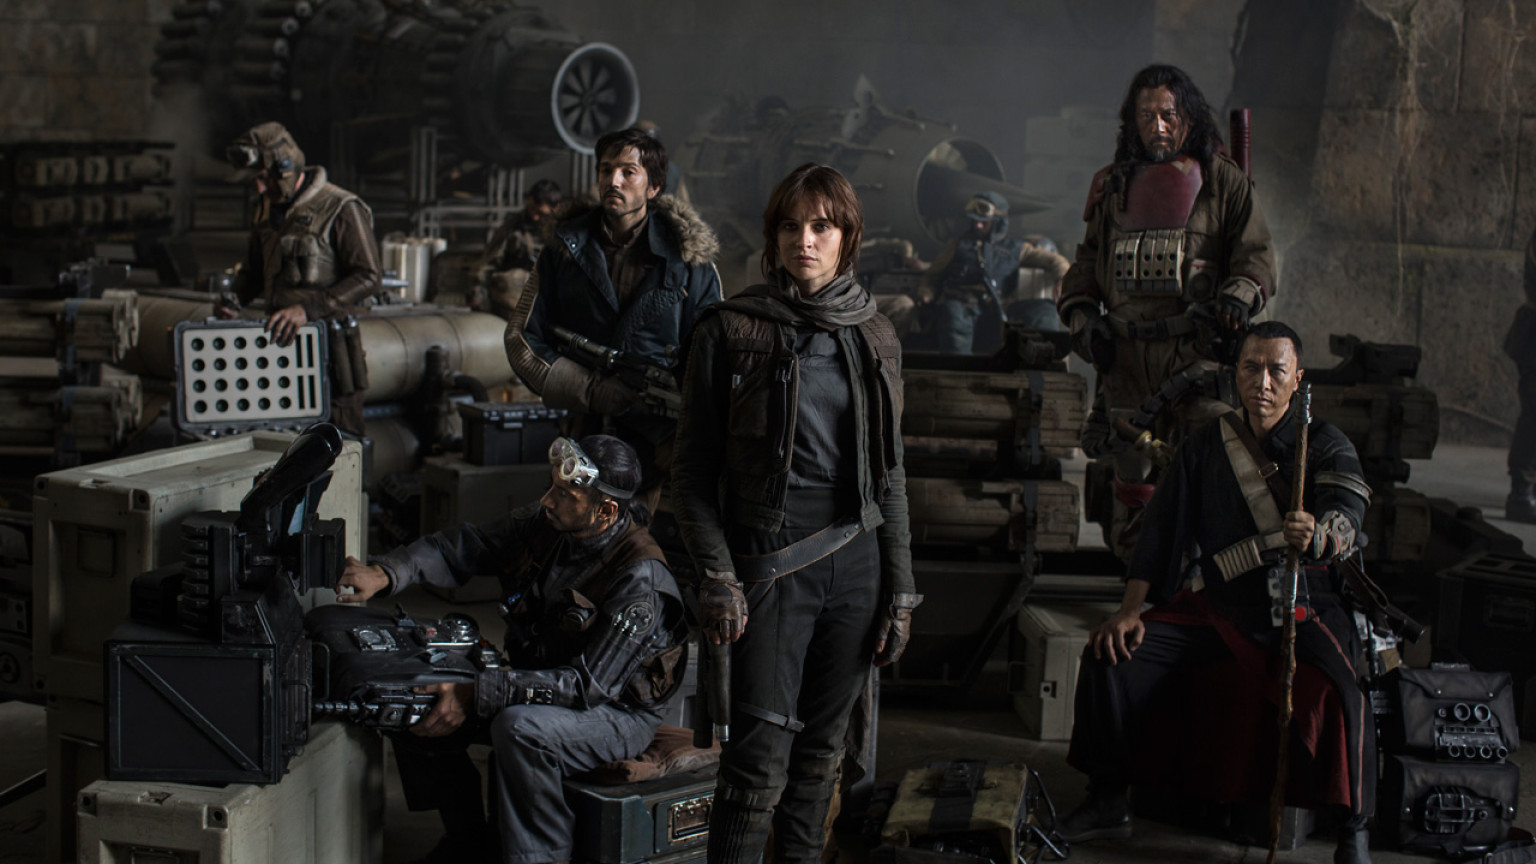 Star Wars Rogue One High Quality Wallpapers